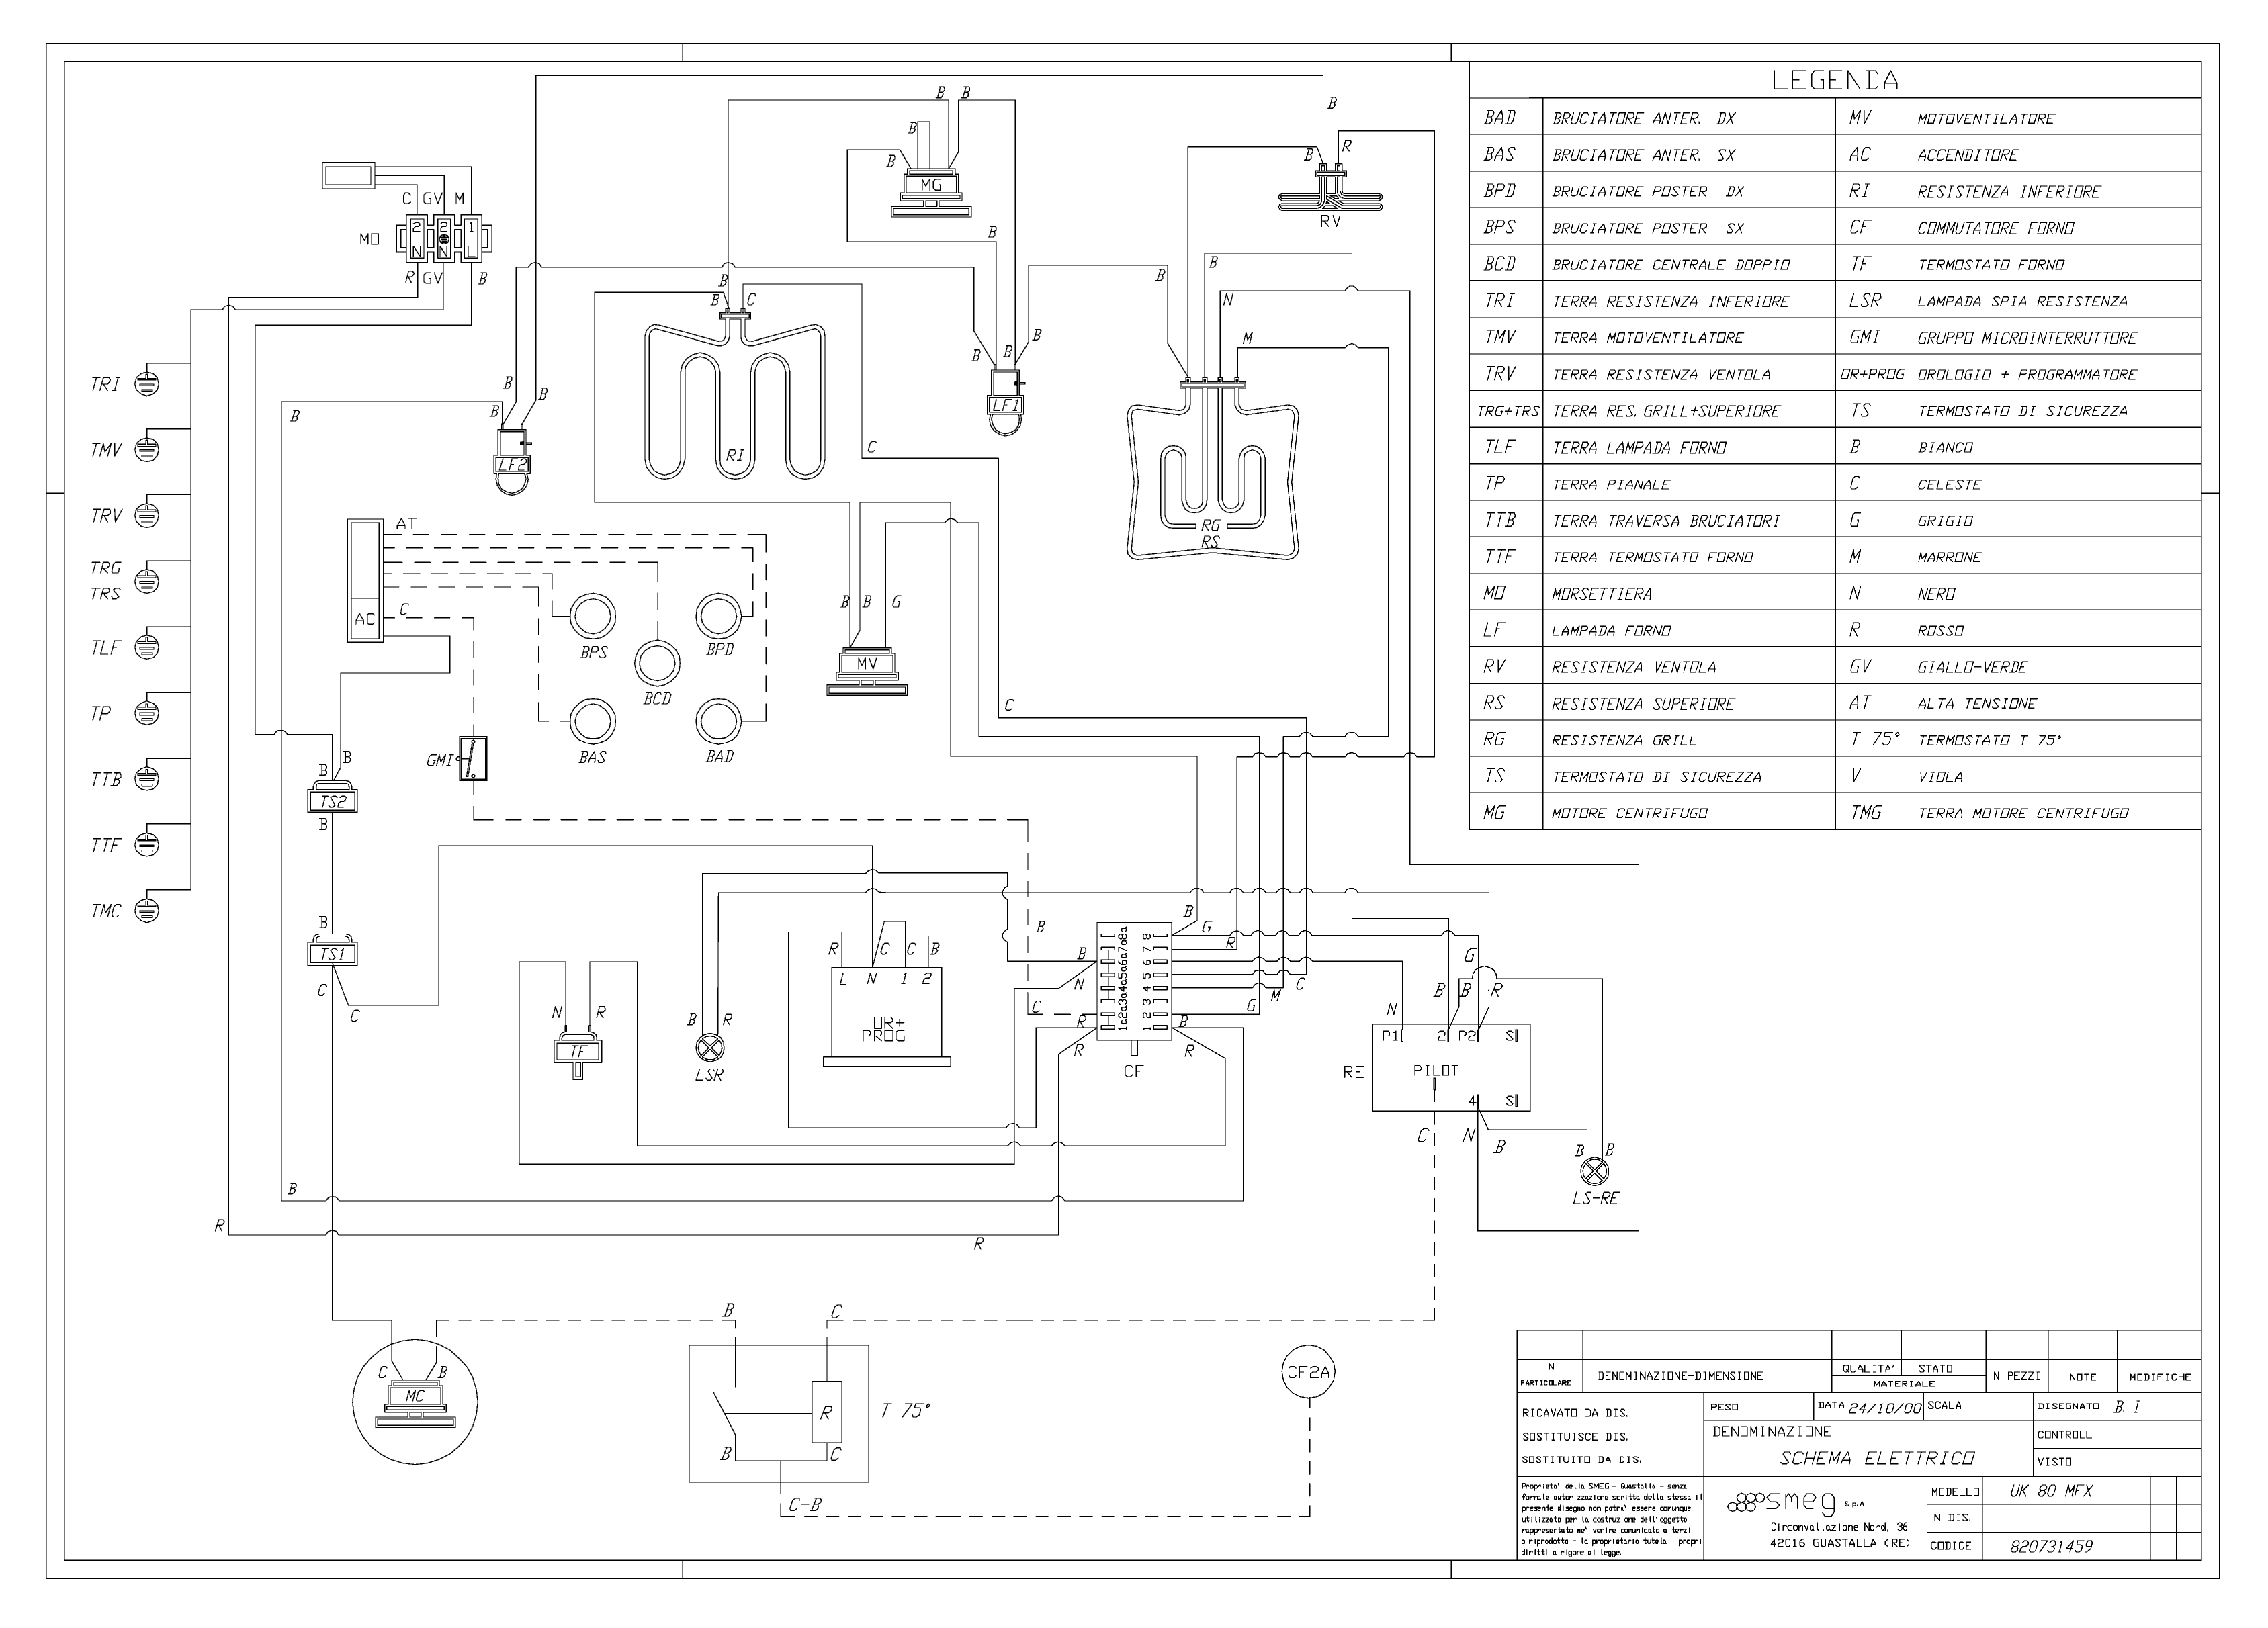 Electrical drawing kuttappan the wiring diagram